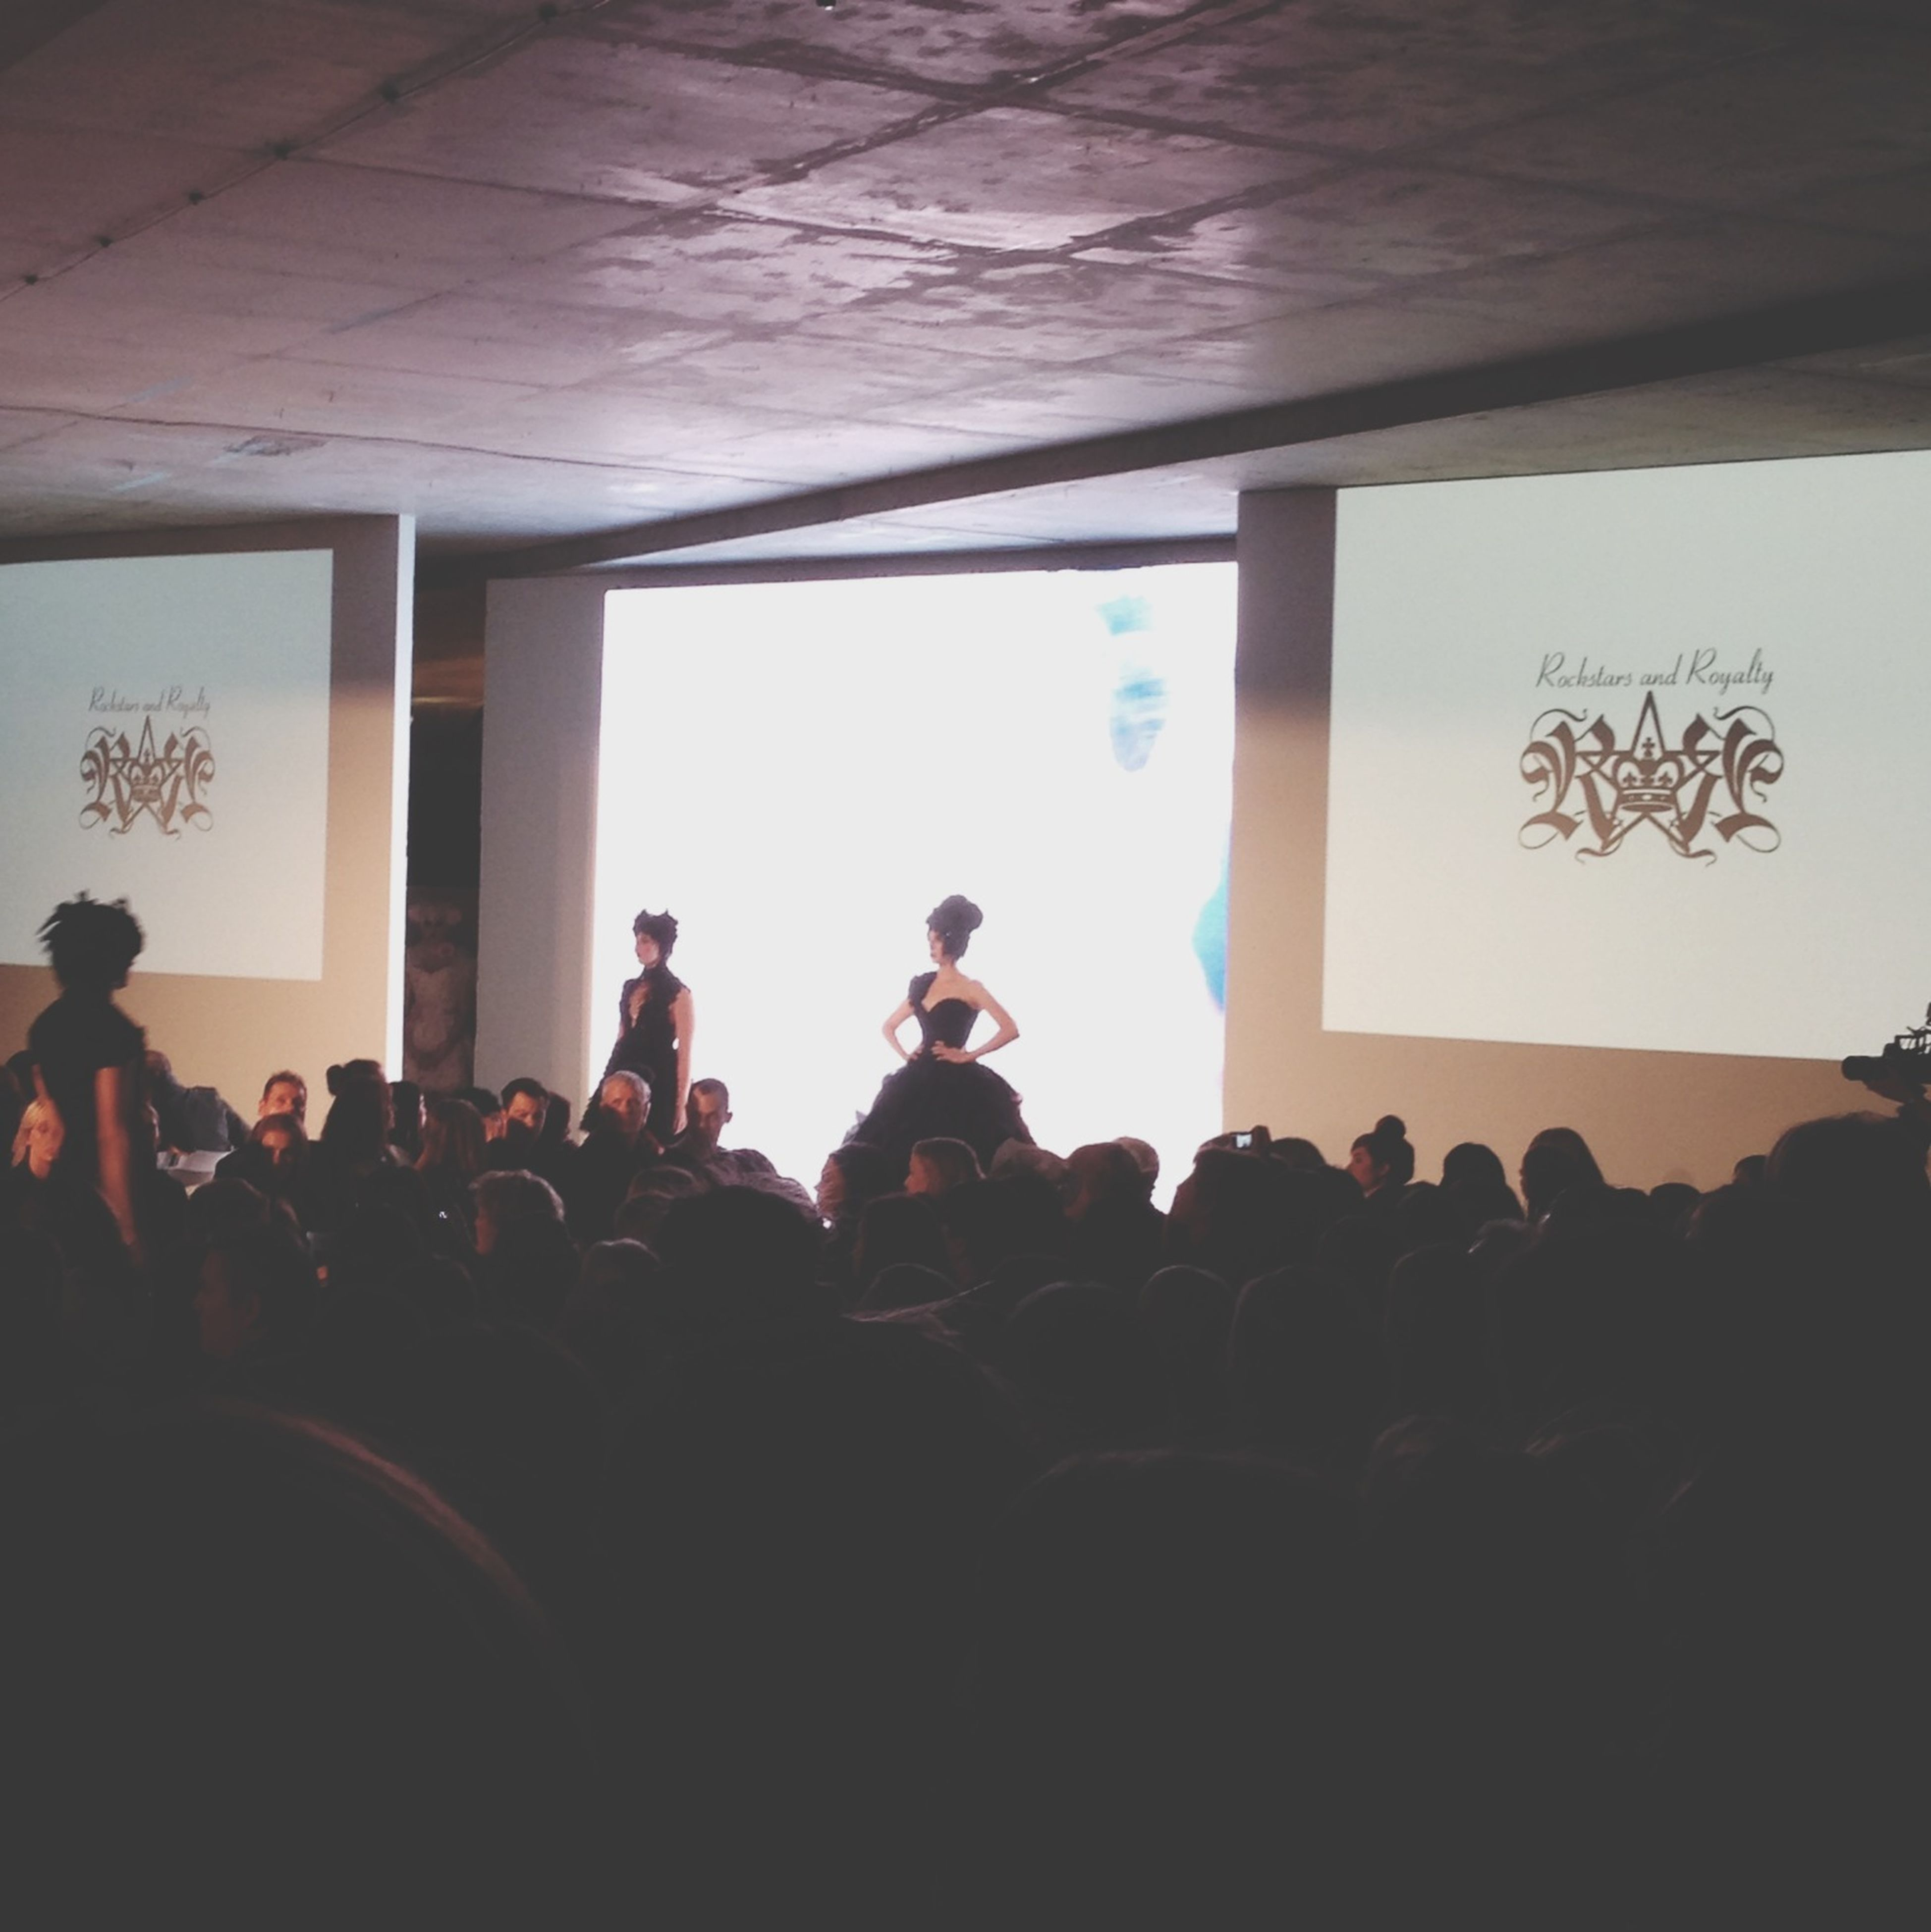 indoors, large group of people, silhouette, men, lifestyles, person, leisure activity, crowd, dark, togetherness, standing, window, copy space, built structure, arts culture and entertainment, sitting, architecture, illuminated, group of people